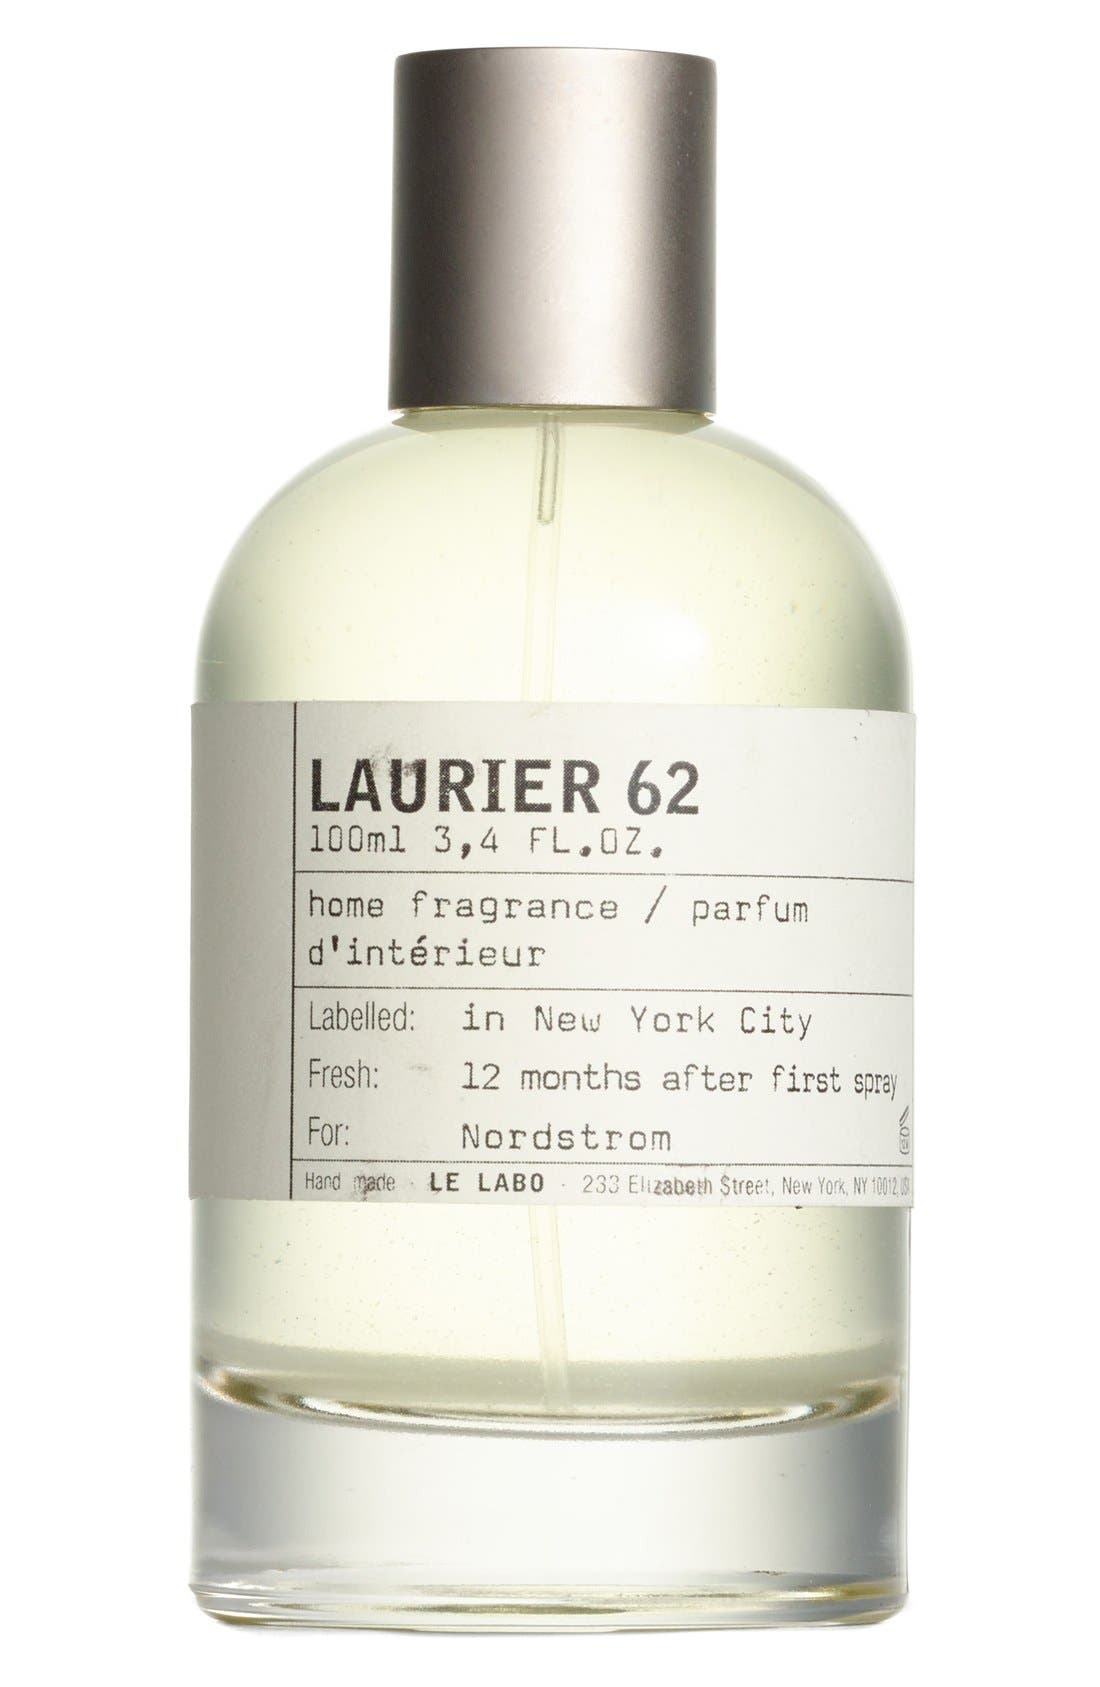 Le Labo 'Laurier 61' Home Fragrance Spray